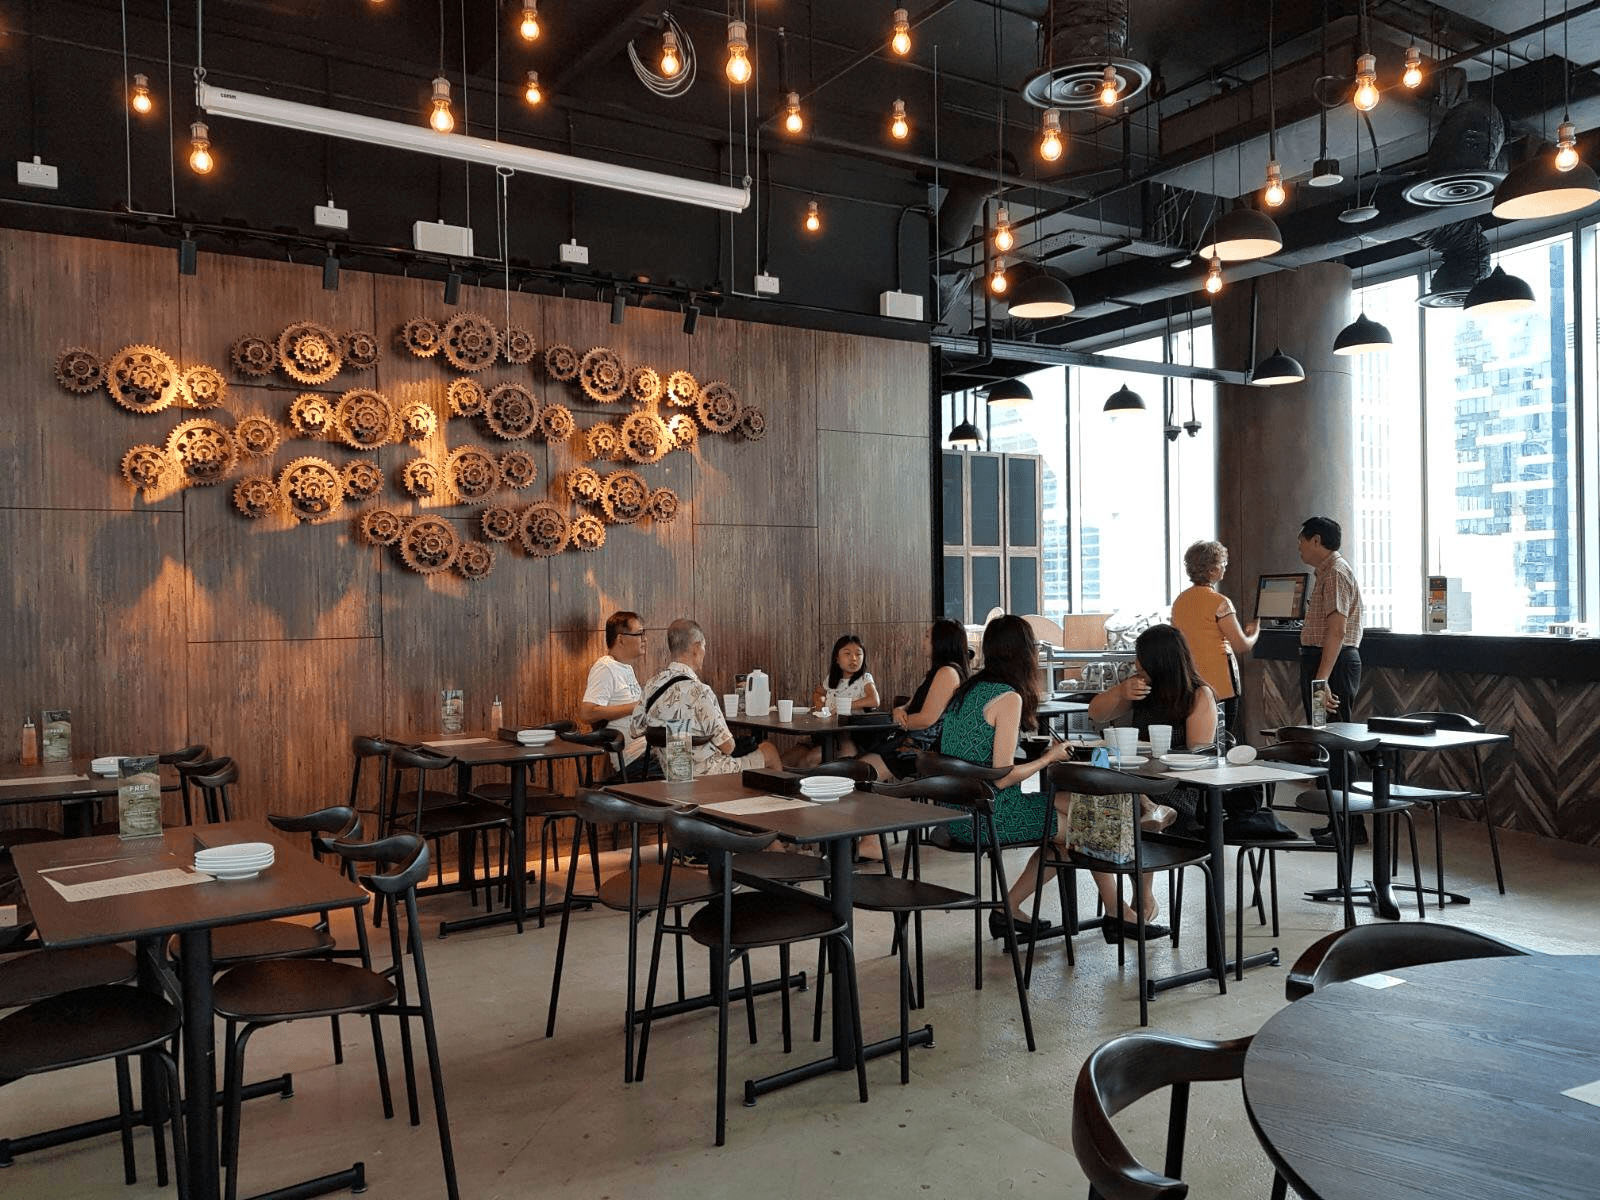 Feb 2018 cafes and restaurants (36) - MYO Restobar interior